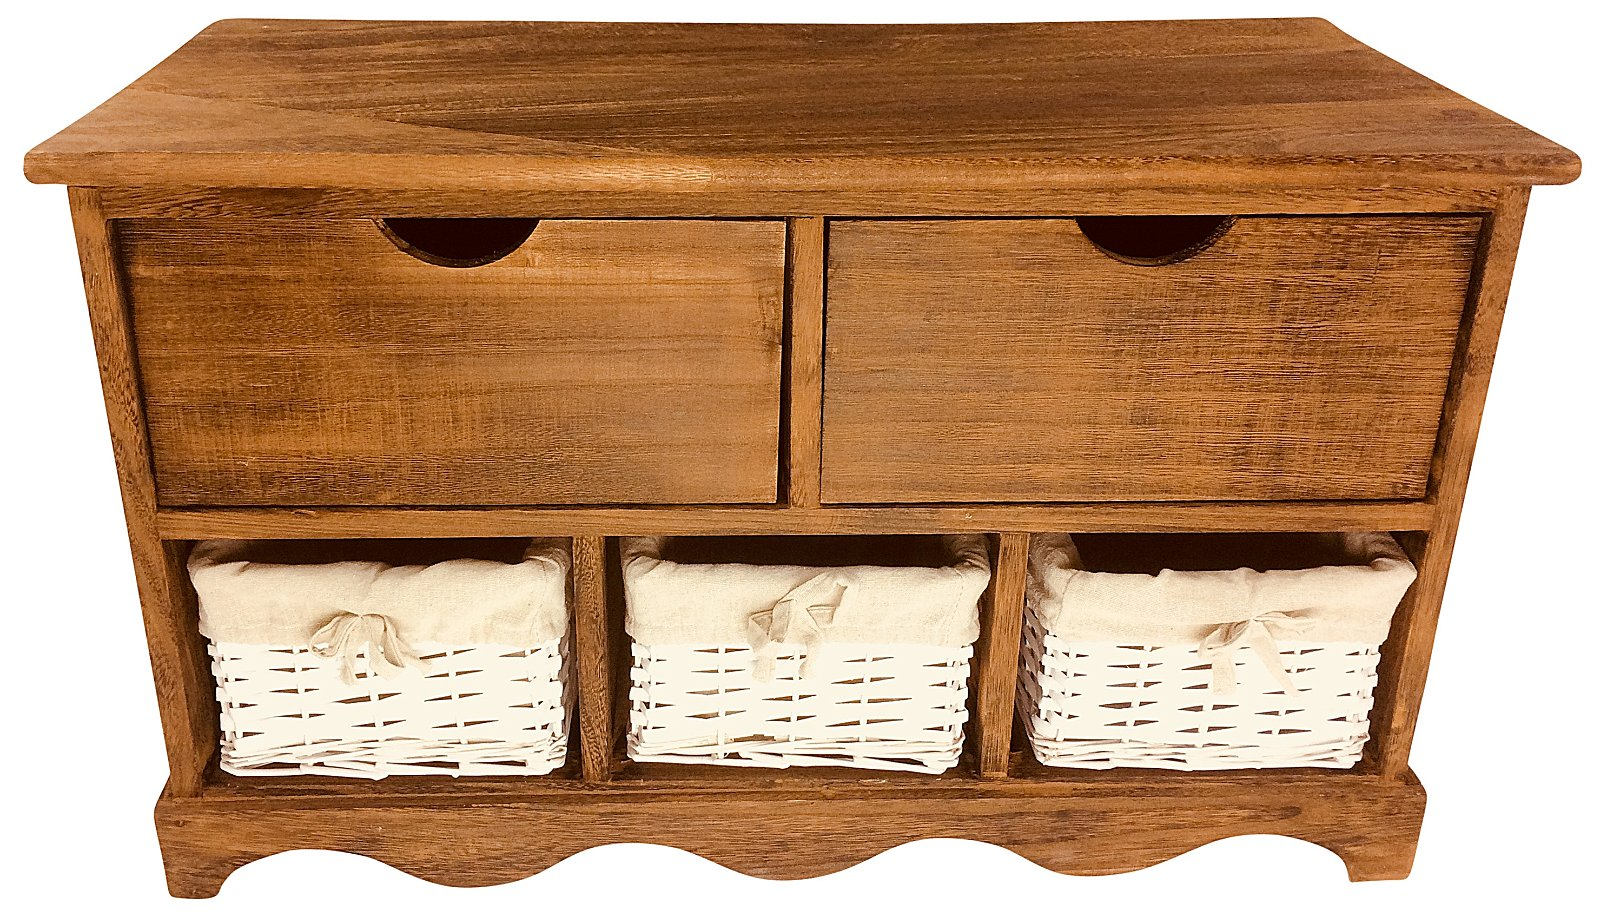 Wood Cabinet With 3 Baskets And 2 Drawers 72cm